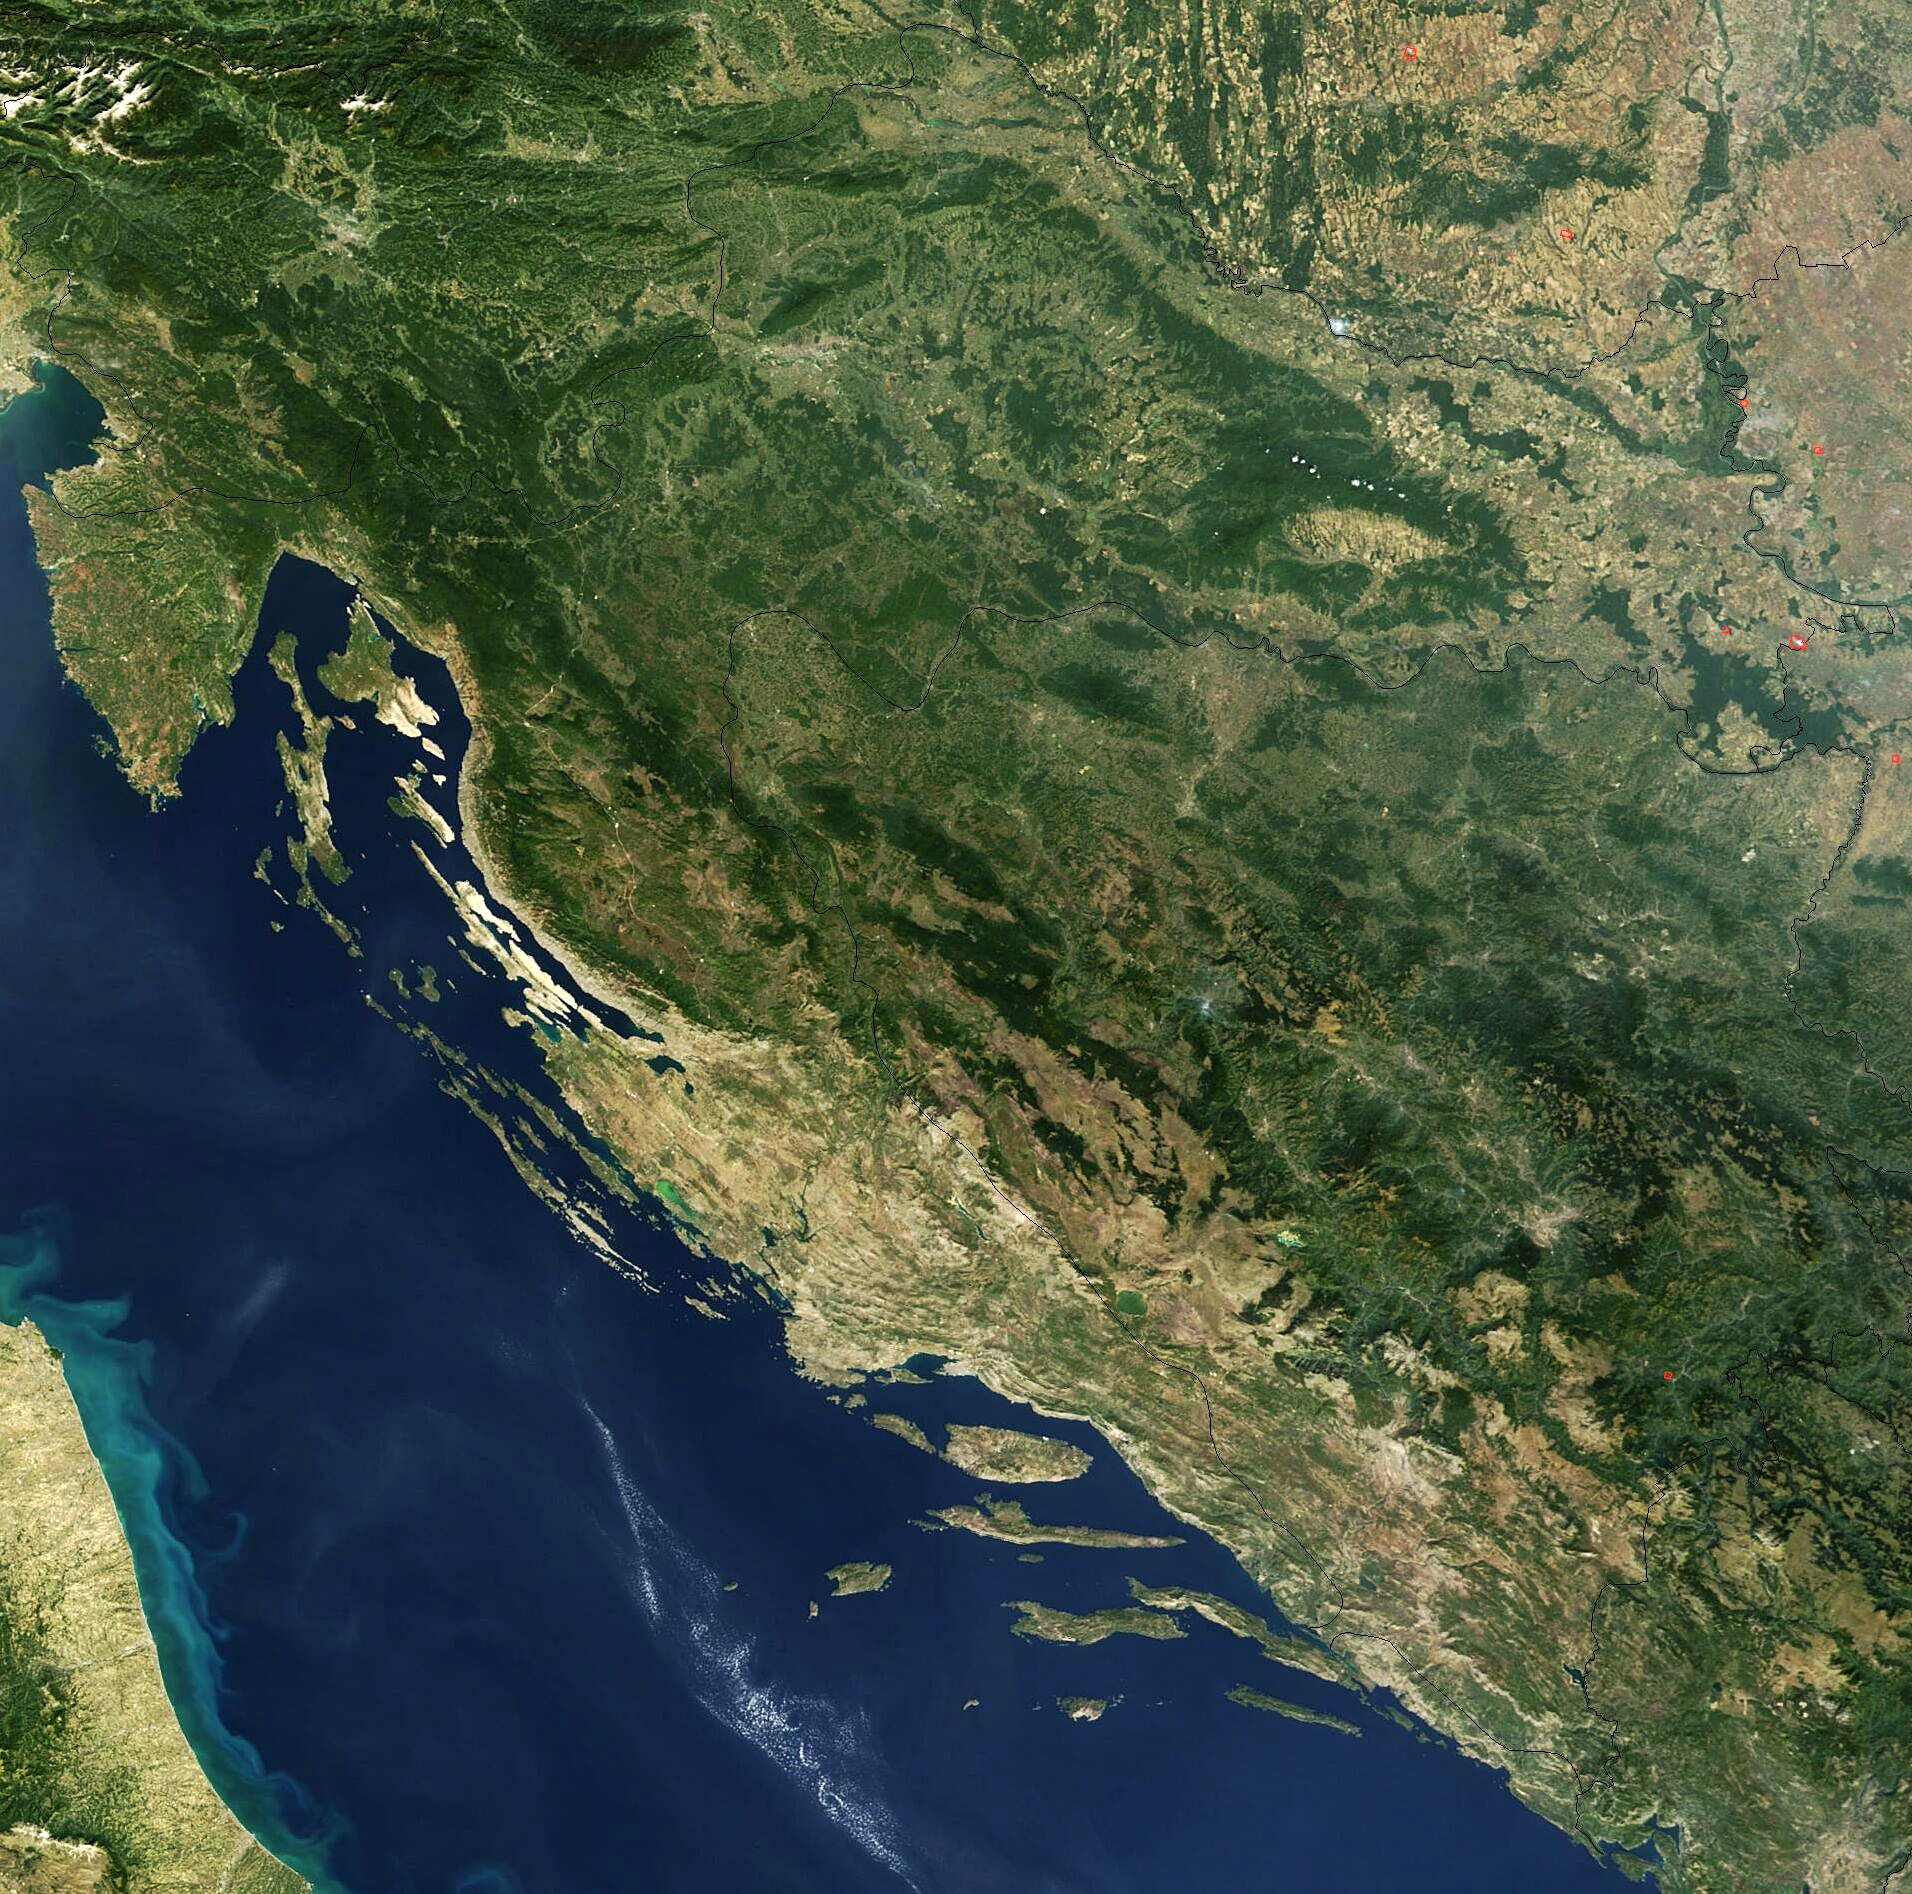 hrvatska karta satelit Datoteka:Satellite image of Croatia in September 2003. – Wikipedija hrvatska karta satelit